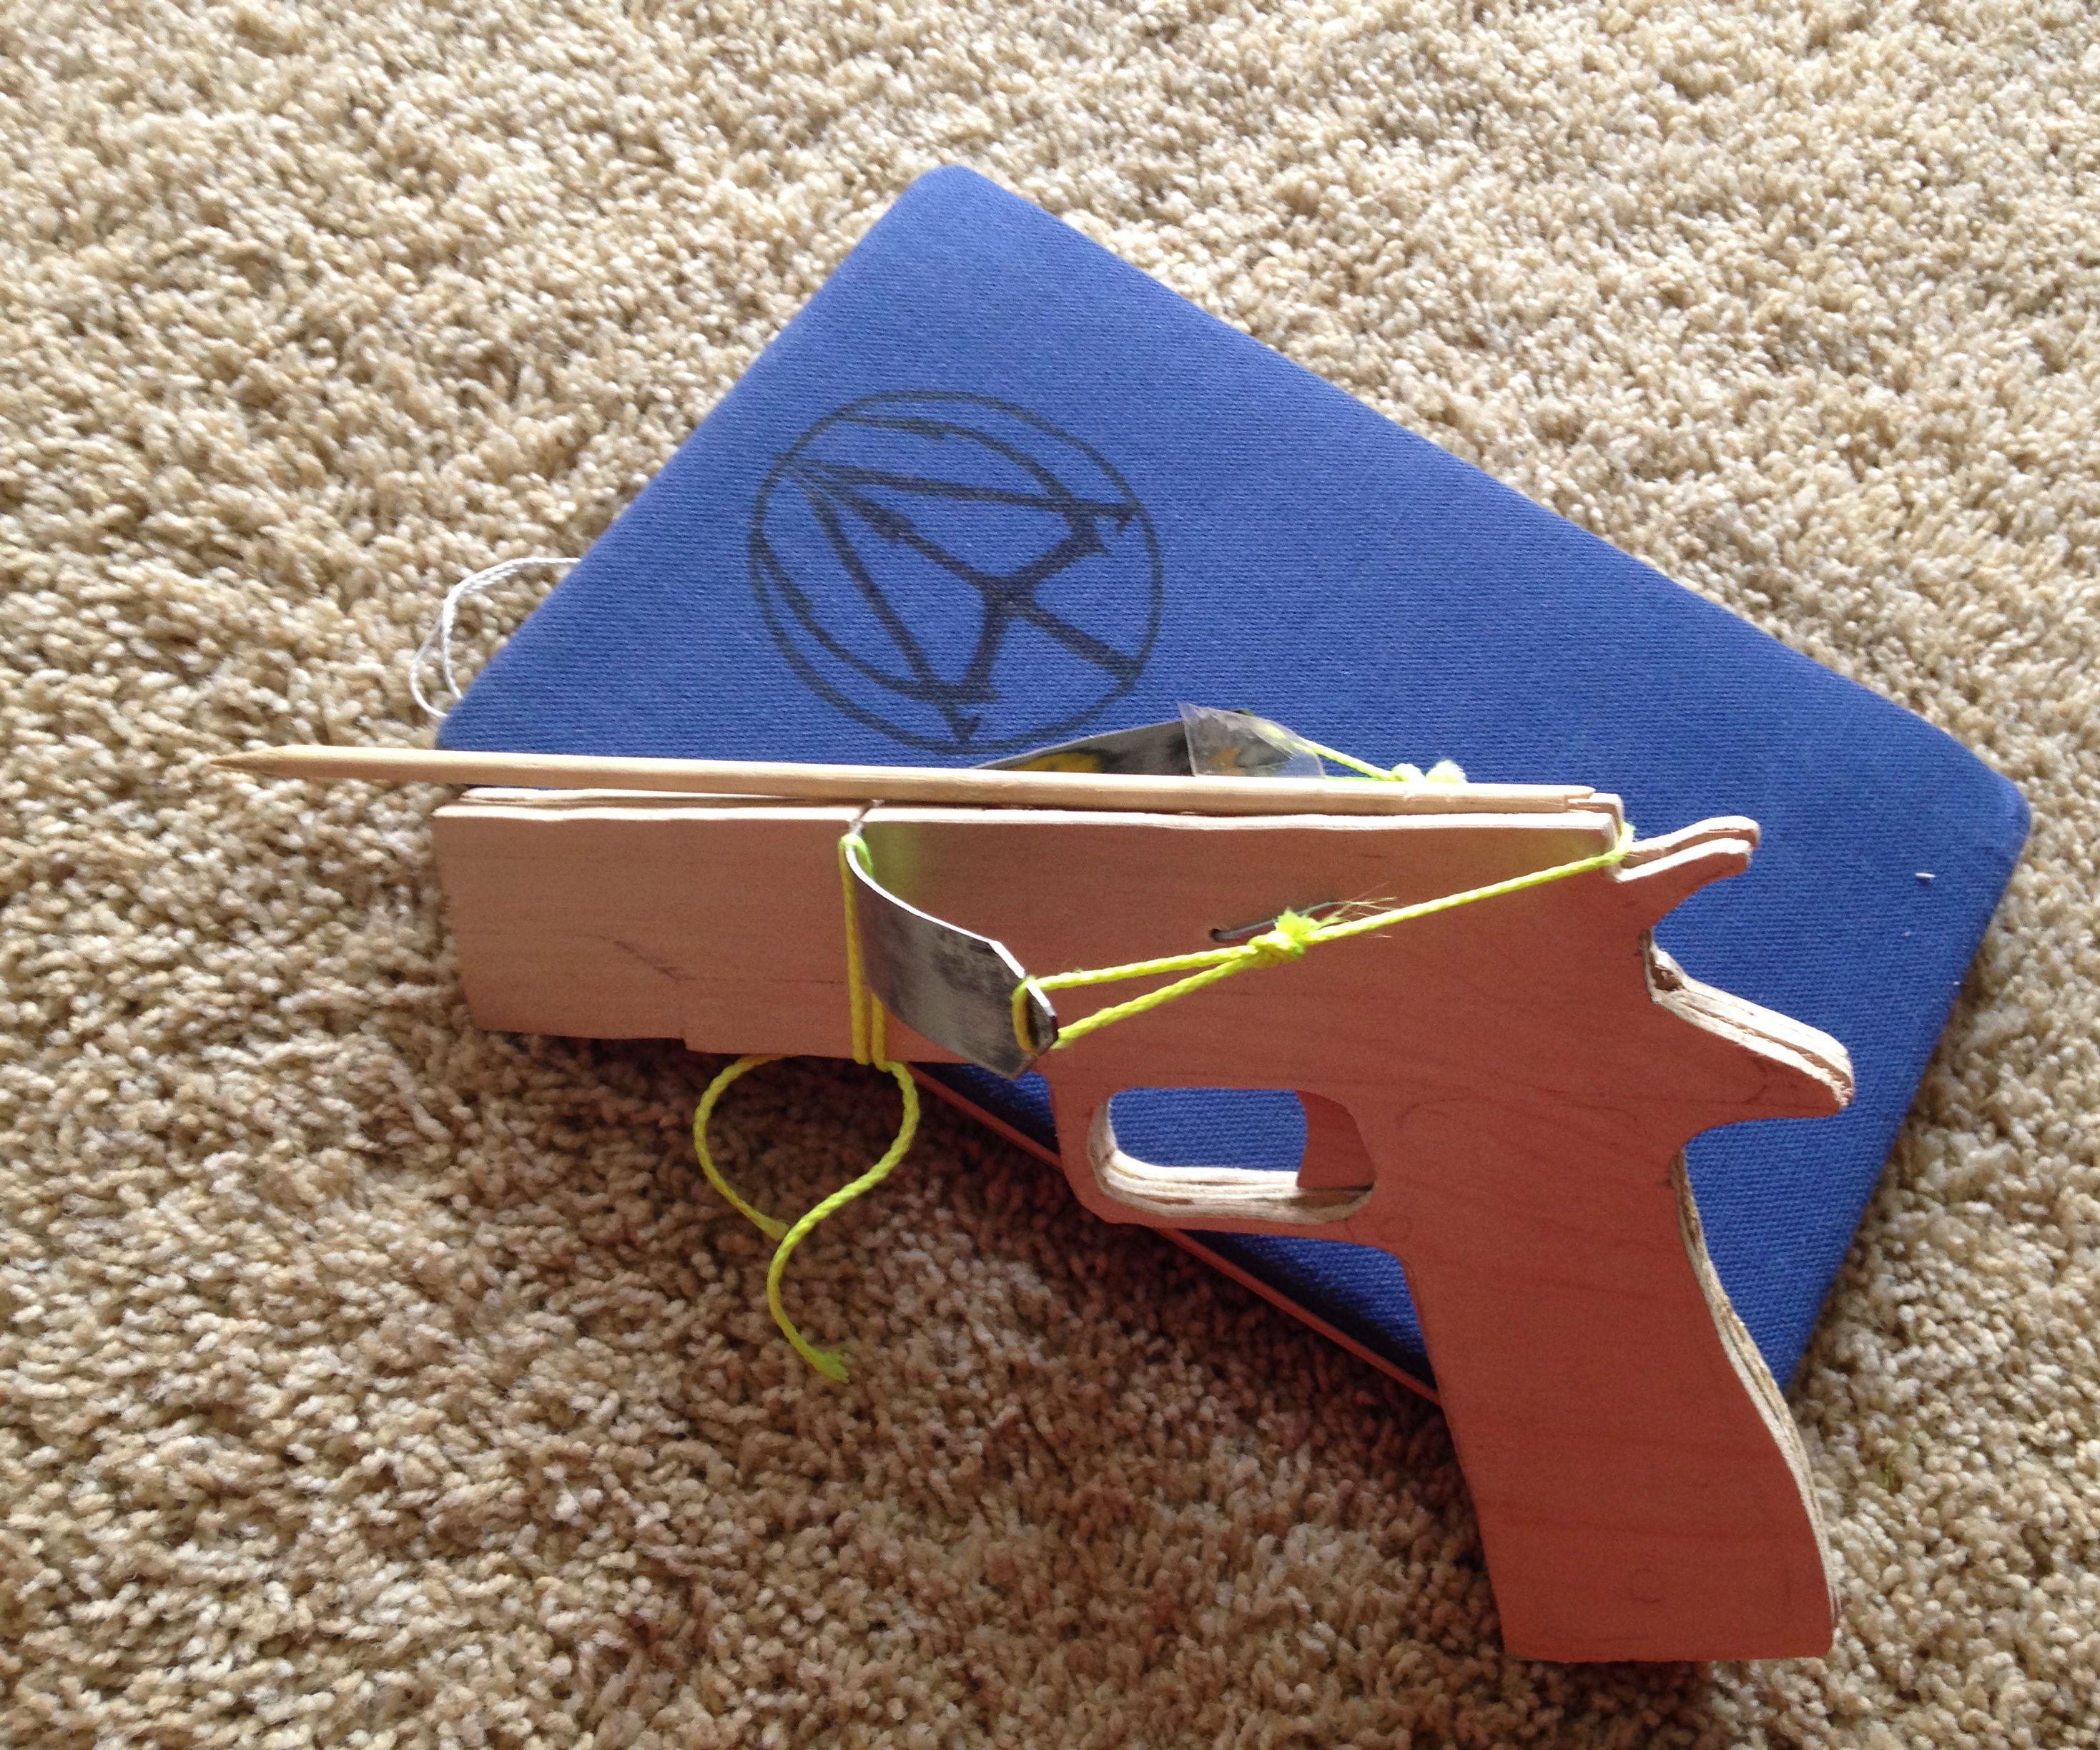 Crossbow Pistol Styled like a Colt M1911